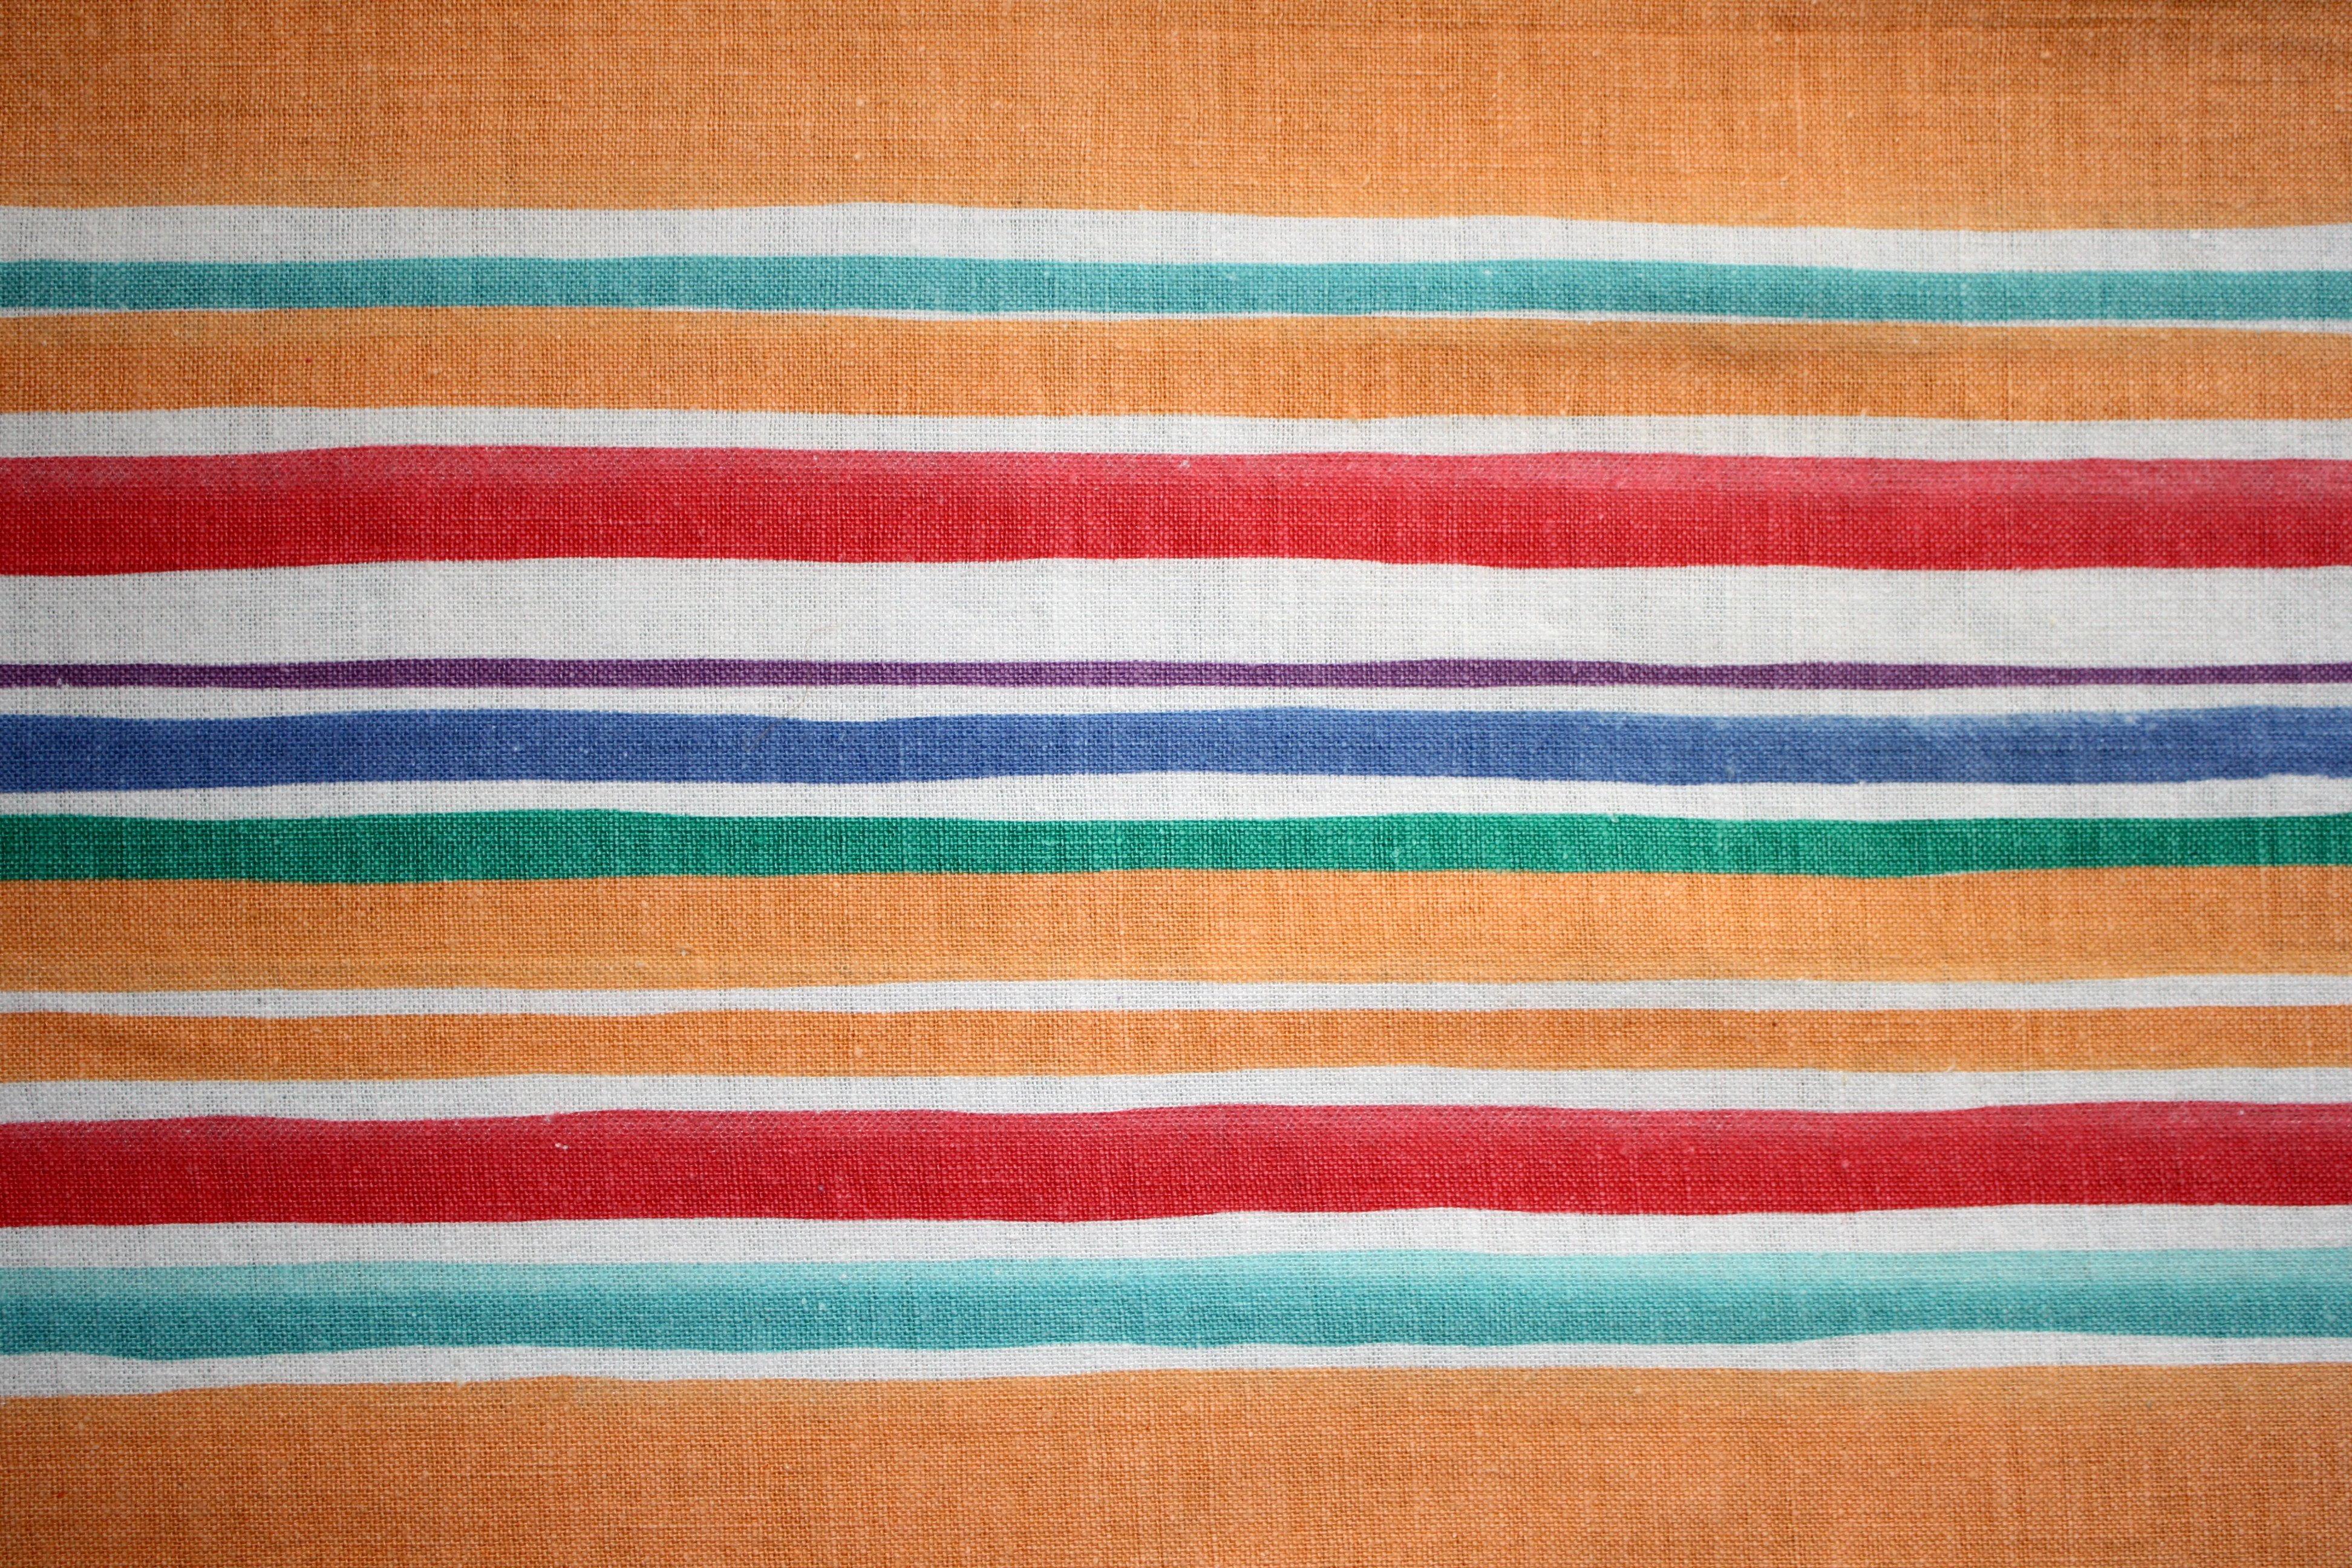 Striped Fabric Texture Orange Red And Green Picture